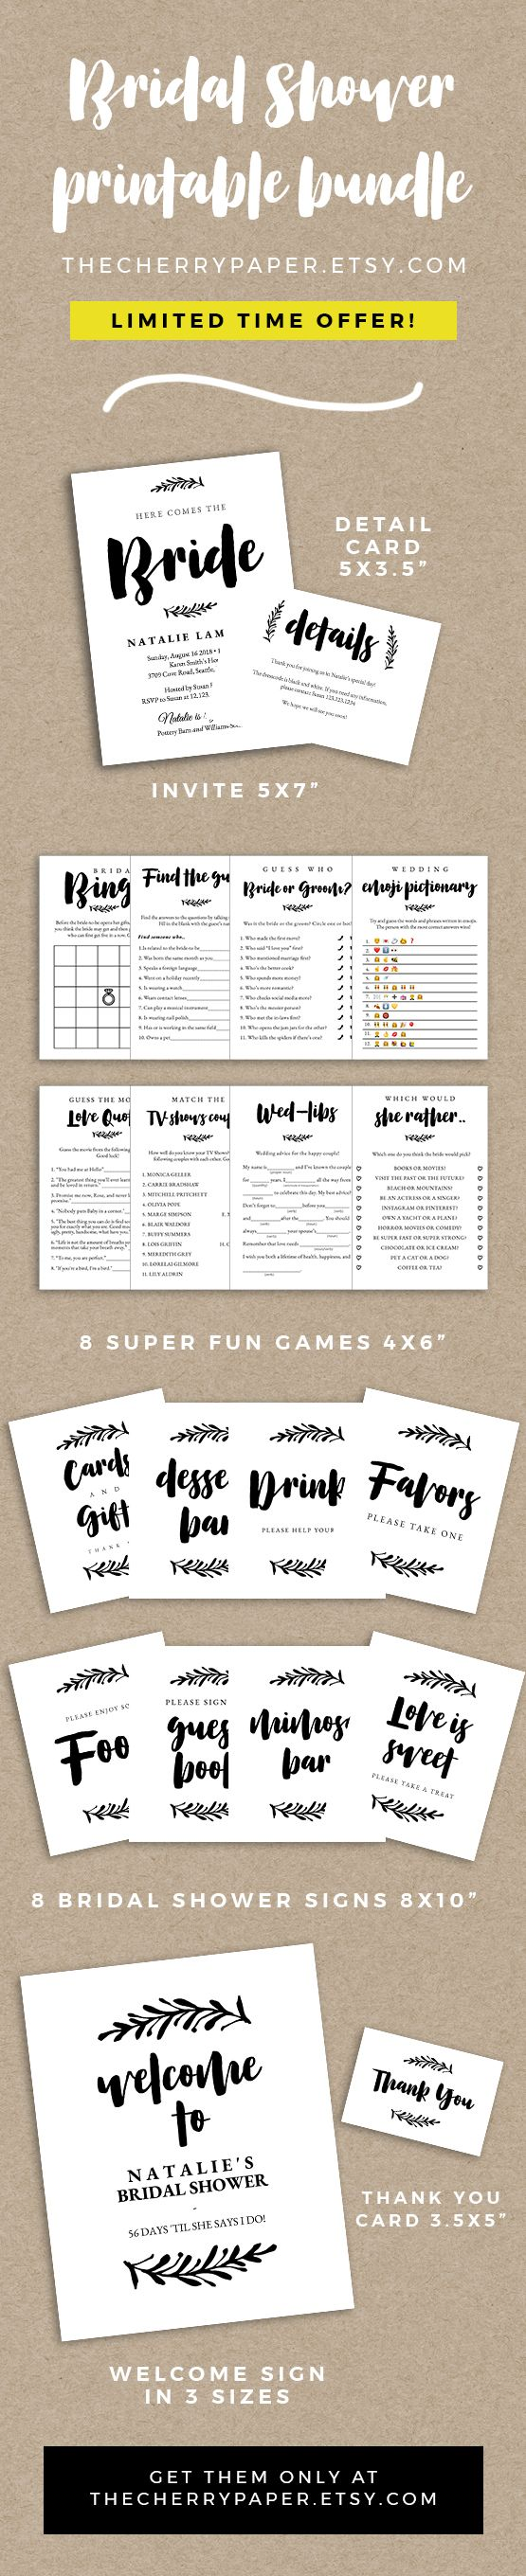 COMPLETE bridal shower printable, package, invite, invitation, bridal shower, bridal party, bachelorette party, game, printable, instant download, details card, detail card, bridal shower bingo, bridal shower find the guest, bride or groom, bridal emoji pictionary, movie love quotes, tv shows couple, madlibs, would she rather, bridal shower signs, party signs, bridal shower welcome sign, thank you card, thank you note, instant download